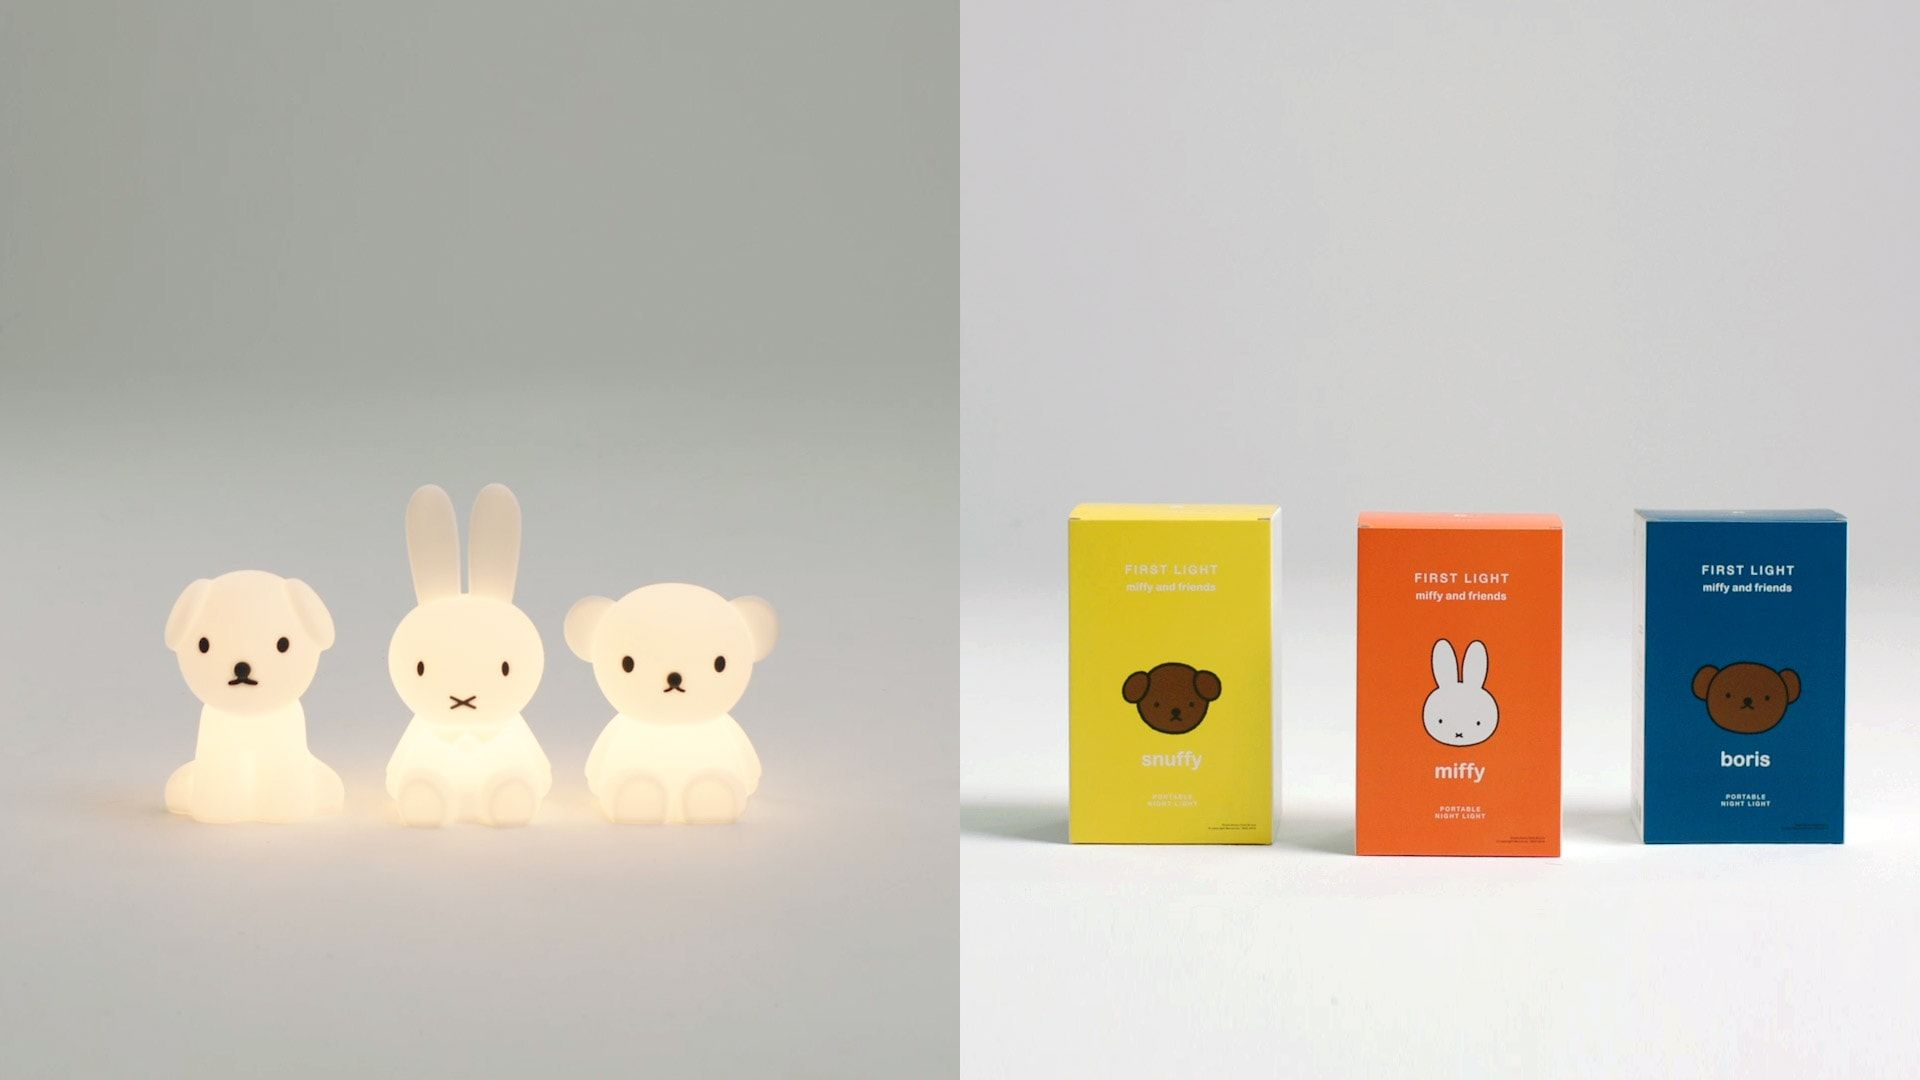 Snuffy, Miffy and Boris Night lights and Packaging